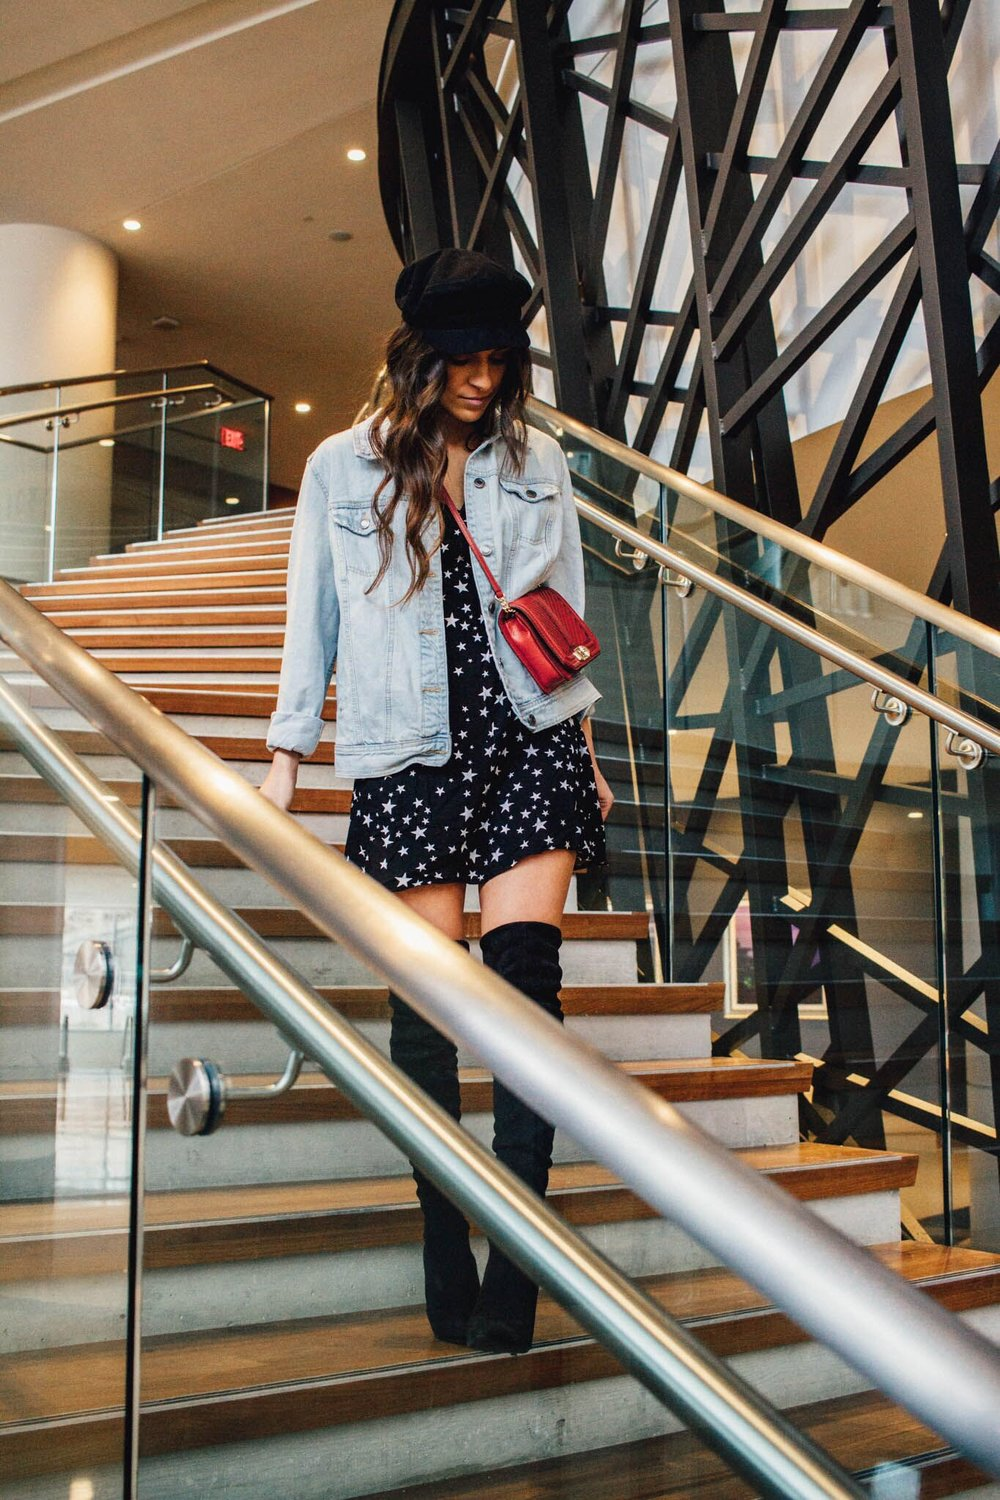 dinner outfit details on on Trends to Try: Newsboy Hat post!